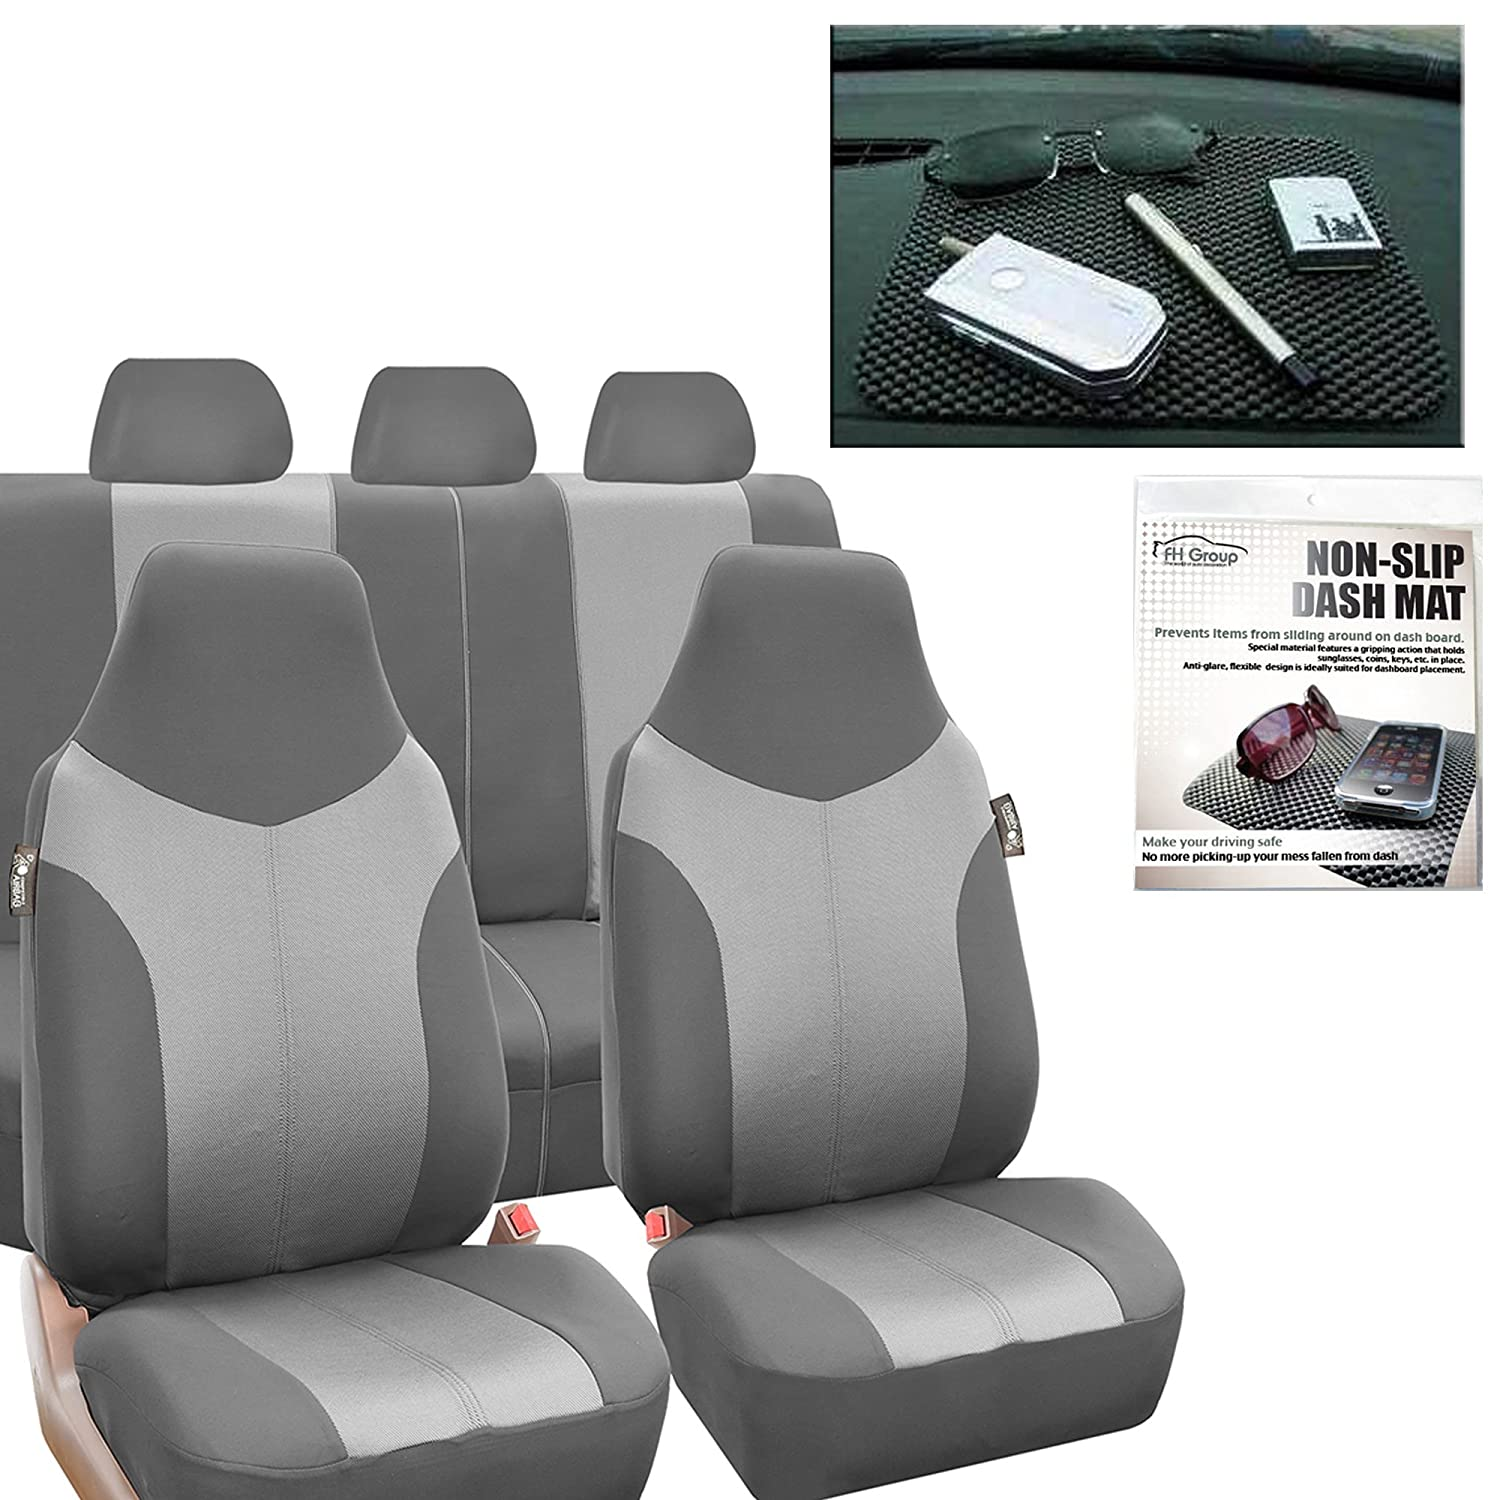 FH Group FH-FB101115 Supreme Twill Fabric High Back Seat Covers Light/Dark Gray (Airbag Ready and Split) W. FH1002 Non-Slip Dash Pad-Fit Most Car, Truck, SUV, or Van - Fit Most Car, Truck, SUV, or Va